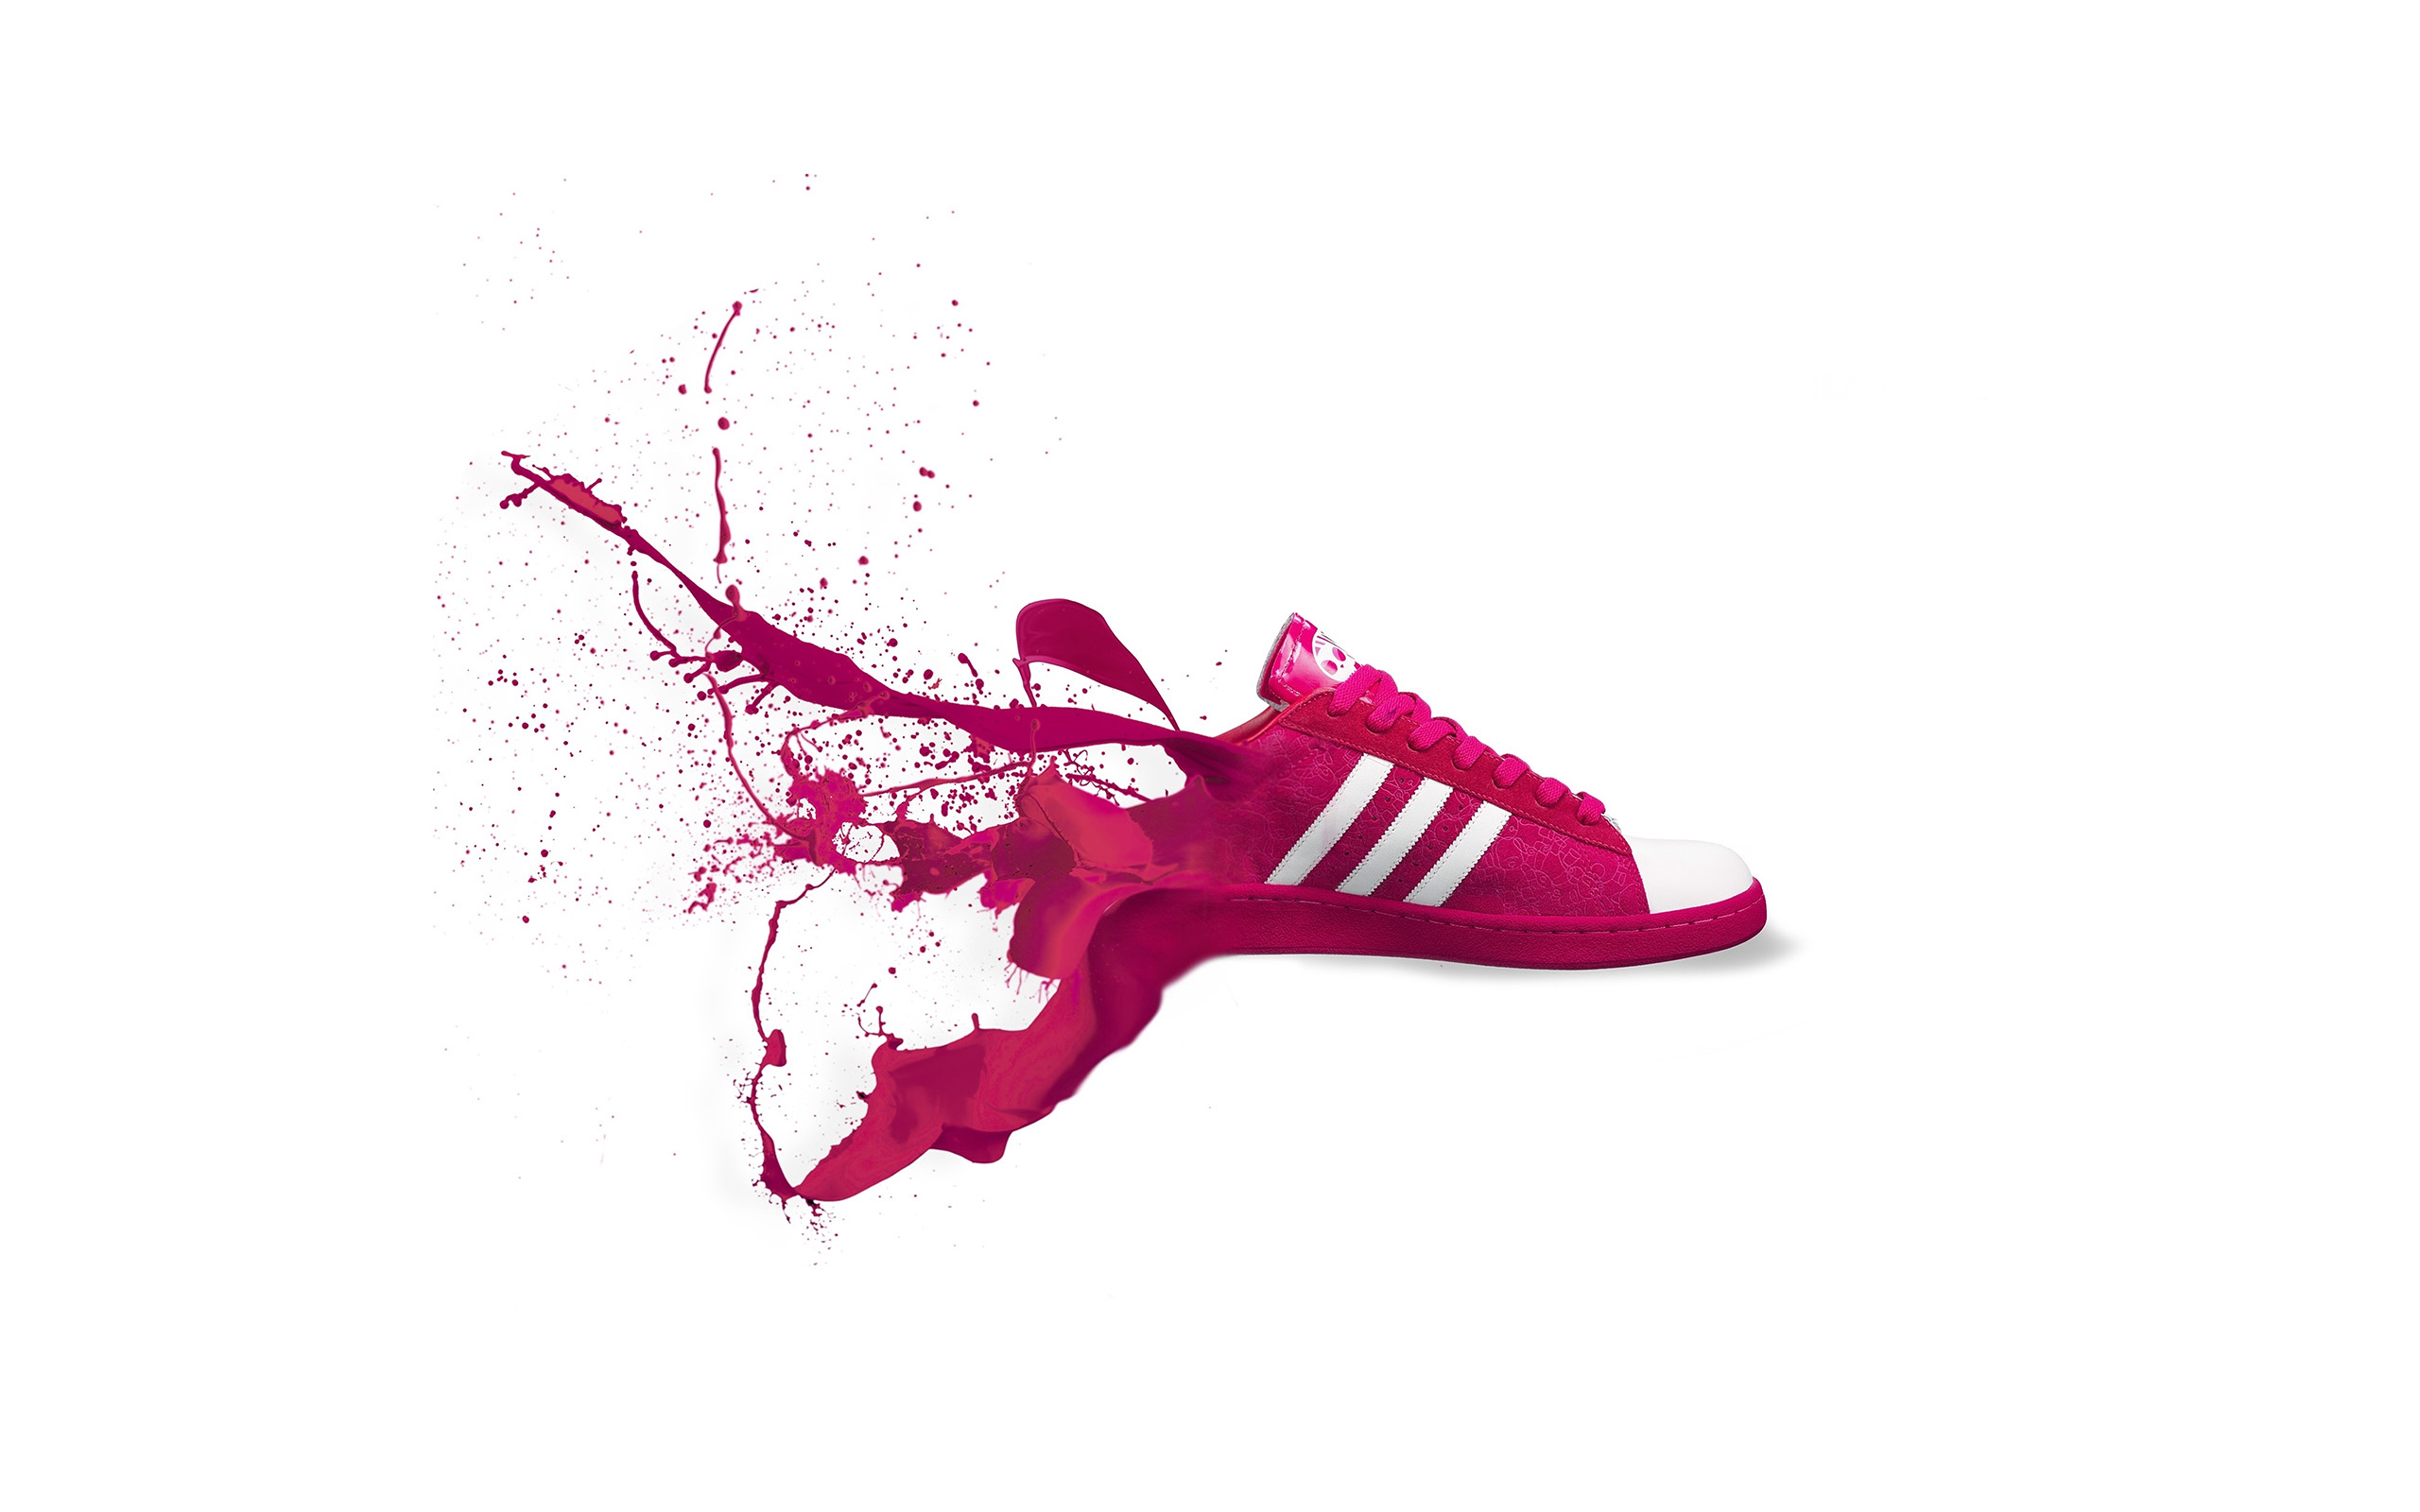 Adidas Logo Wallpaper Iphone Am06 Adidas Red Shoes Sneakers Logo Art Splash Papers Co